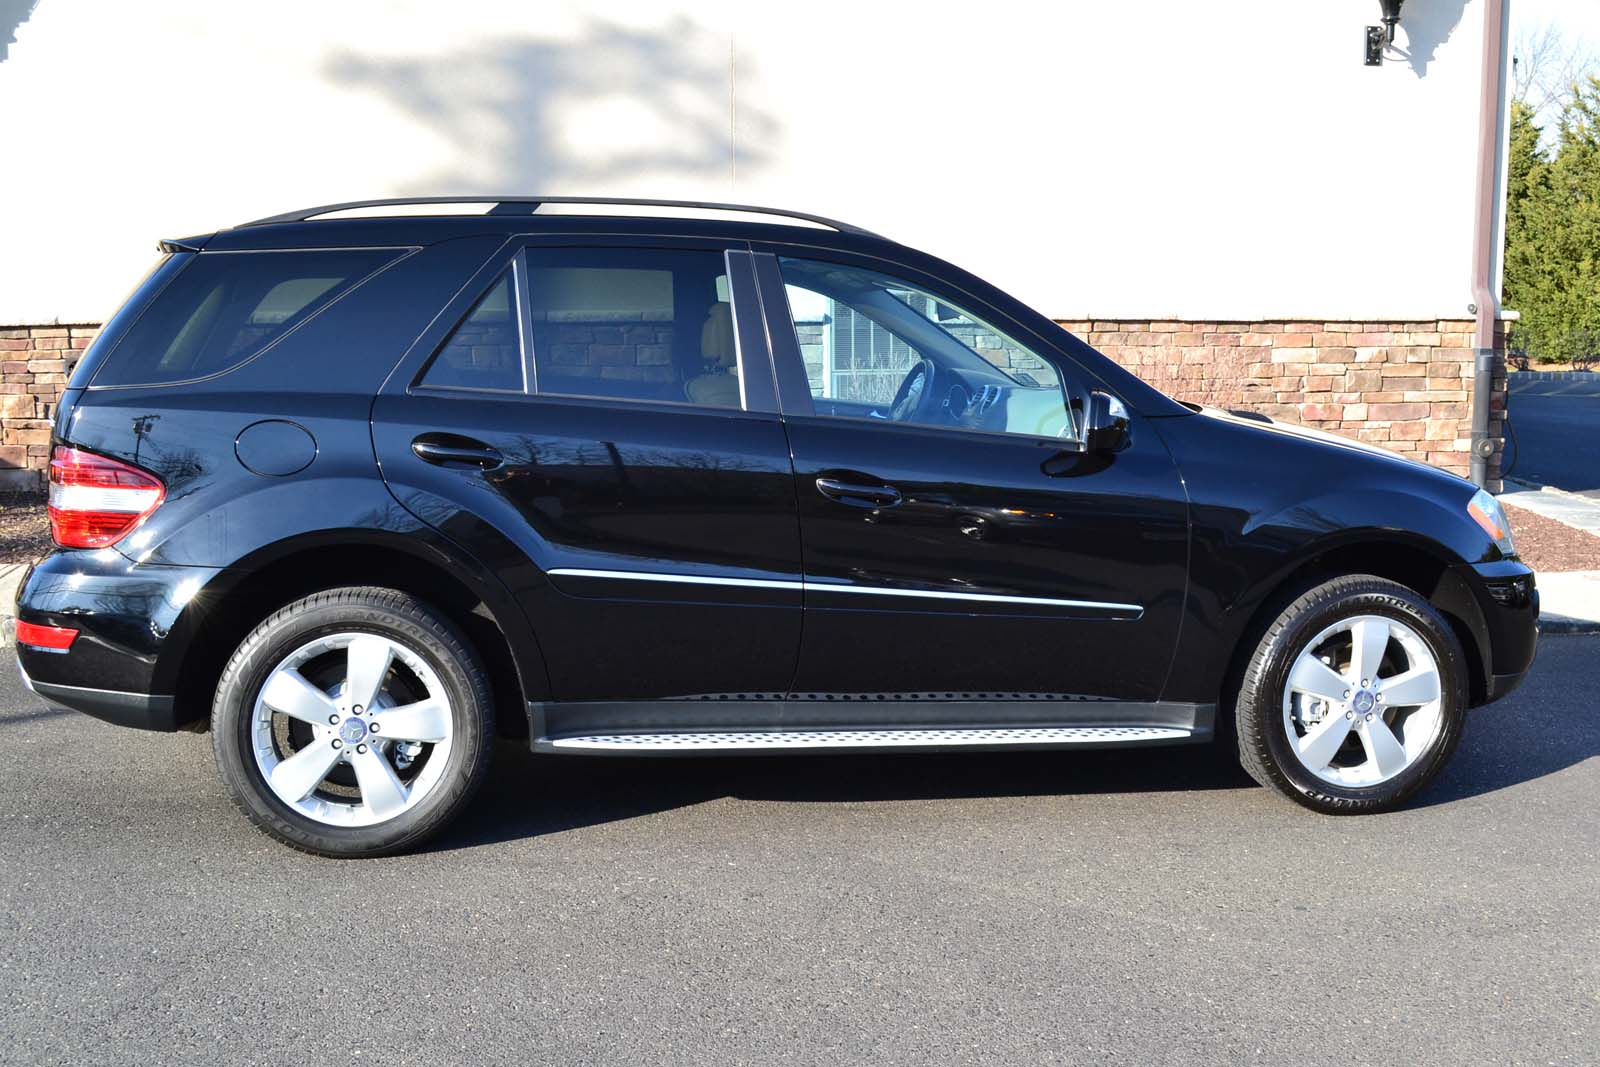 Mercedes Benz Pre Owned >> 2009 Mercedes Benz ML350 4Matic Pre-Owned